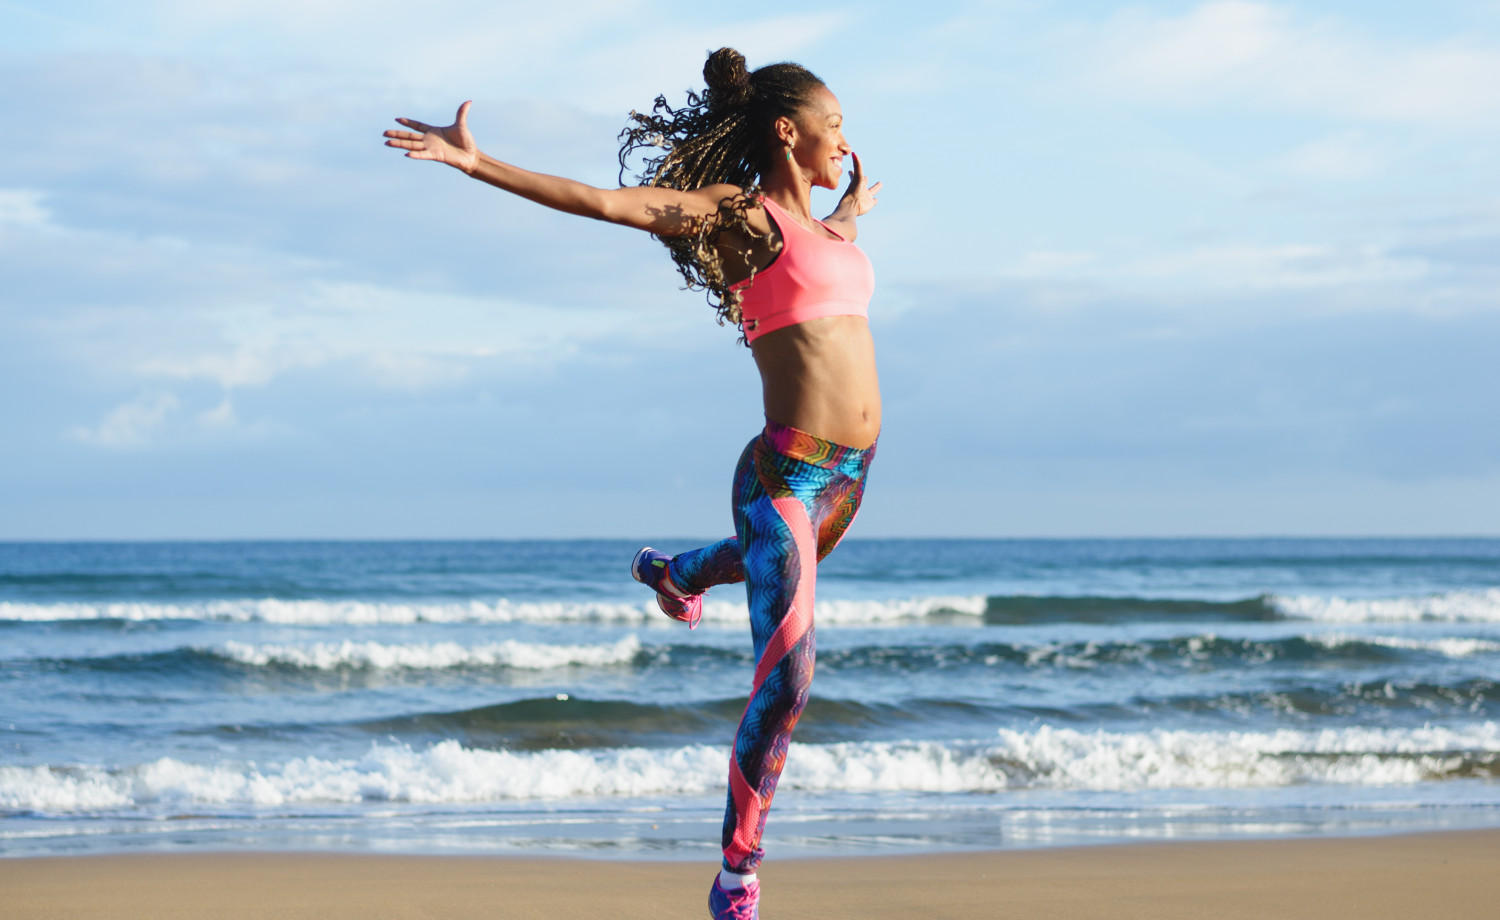 Sporty woman dancing and jumping at the beach.